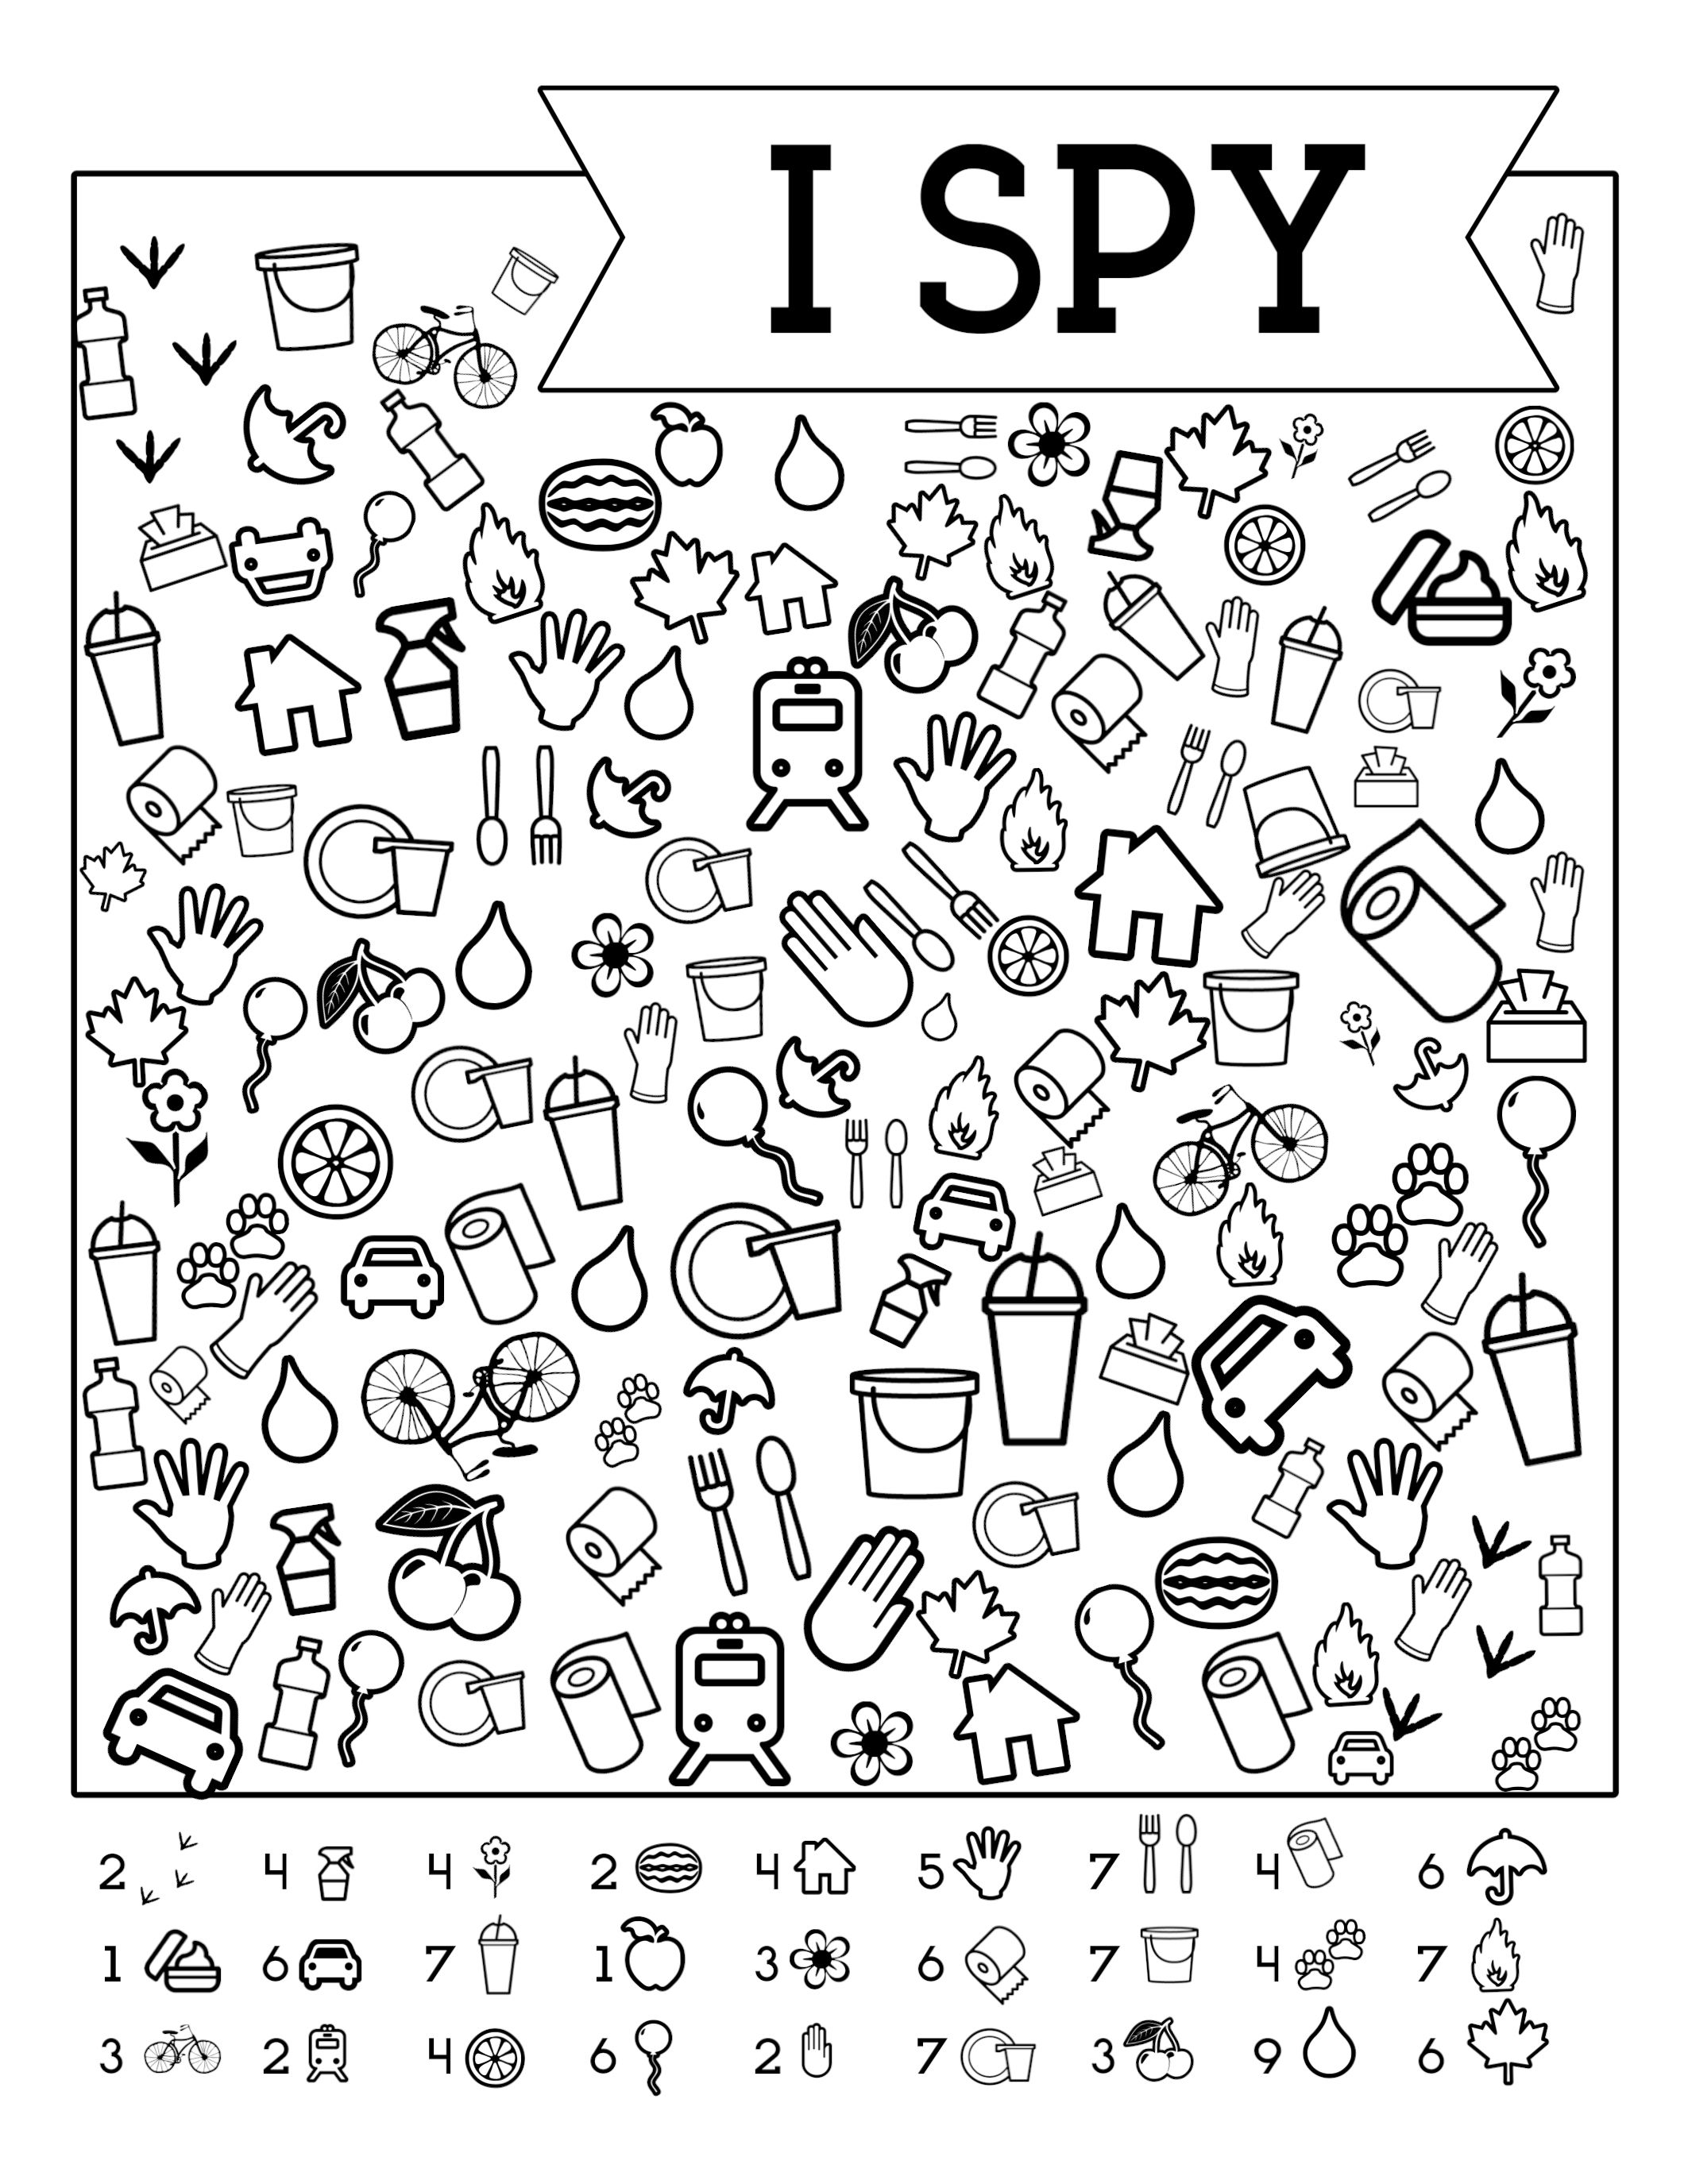 I Spy Free Printable Kids Game Paper Games For Kids Spy Games